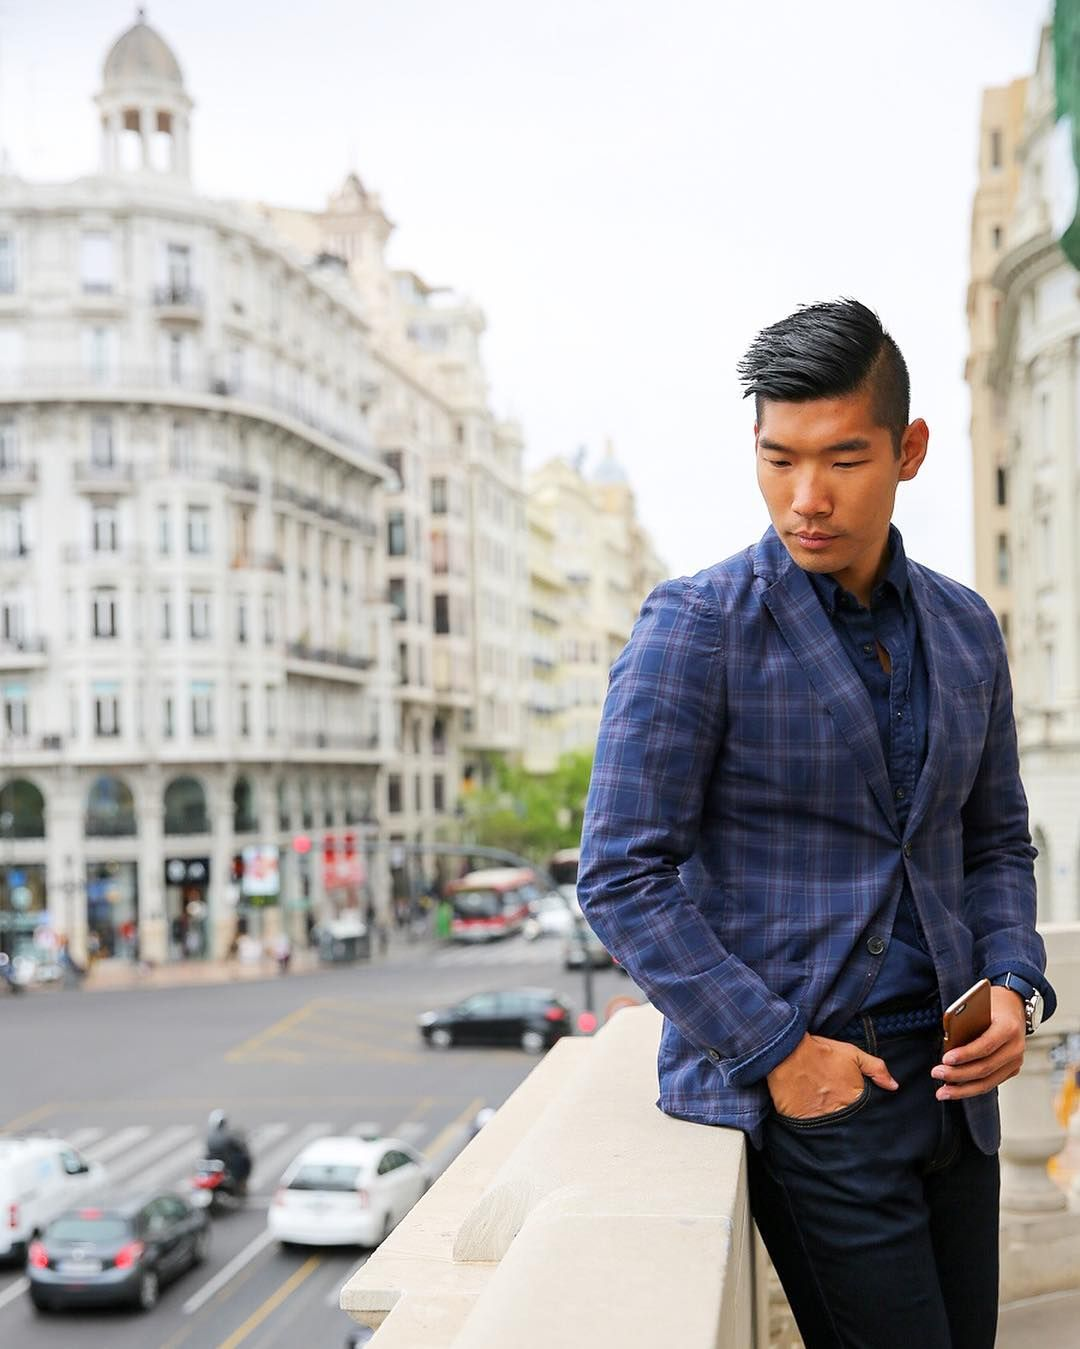 Timeless Style  Love how this sharp casual menswear look fits in #Valencia from the old town to the futuristic parts Full feature link in bio! http://ift.tt/10fRvFt  #LevitateStyle #LevitateSpain